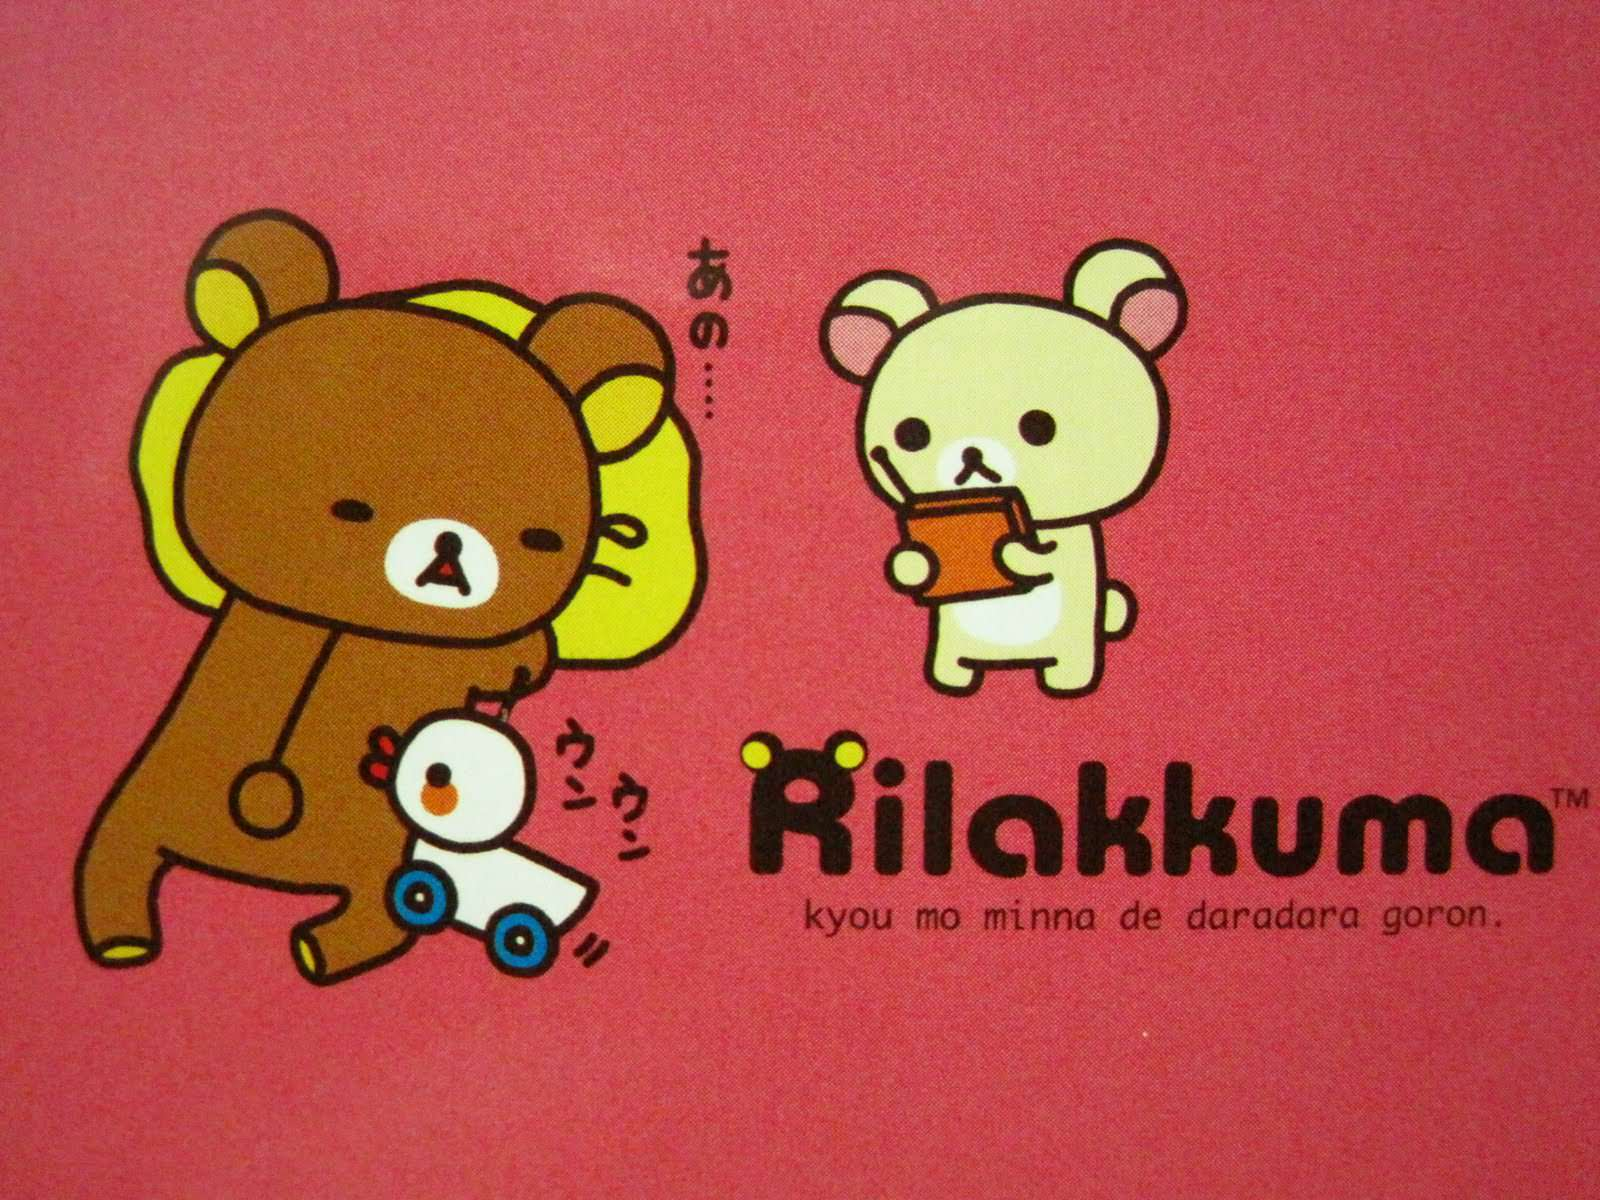 rilakkuma wallpaper january - photo #38